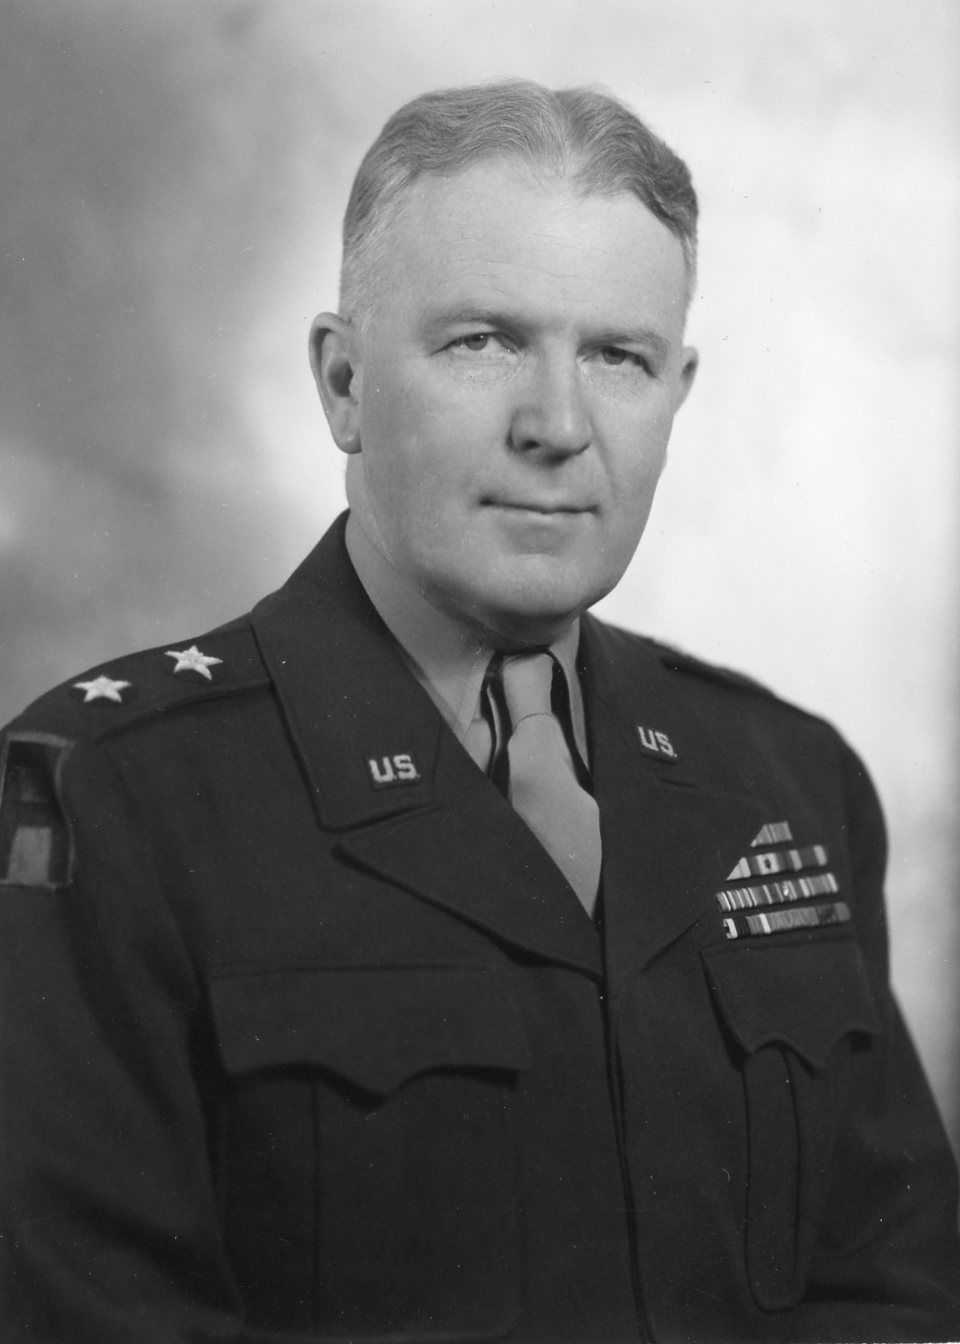 Jim Dan Hill in uniform.